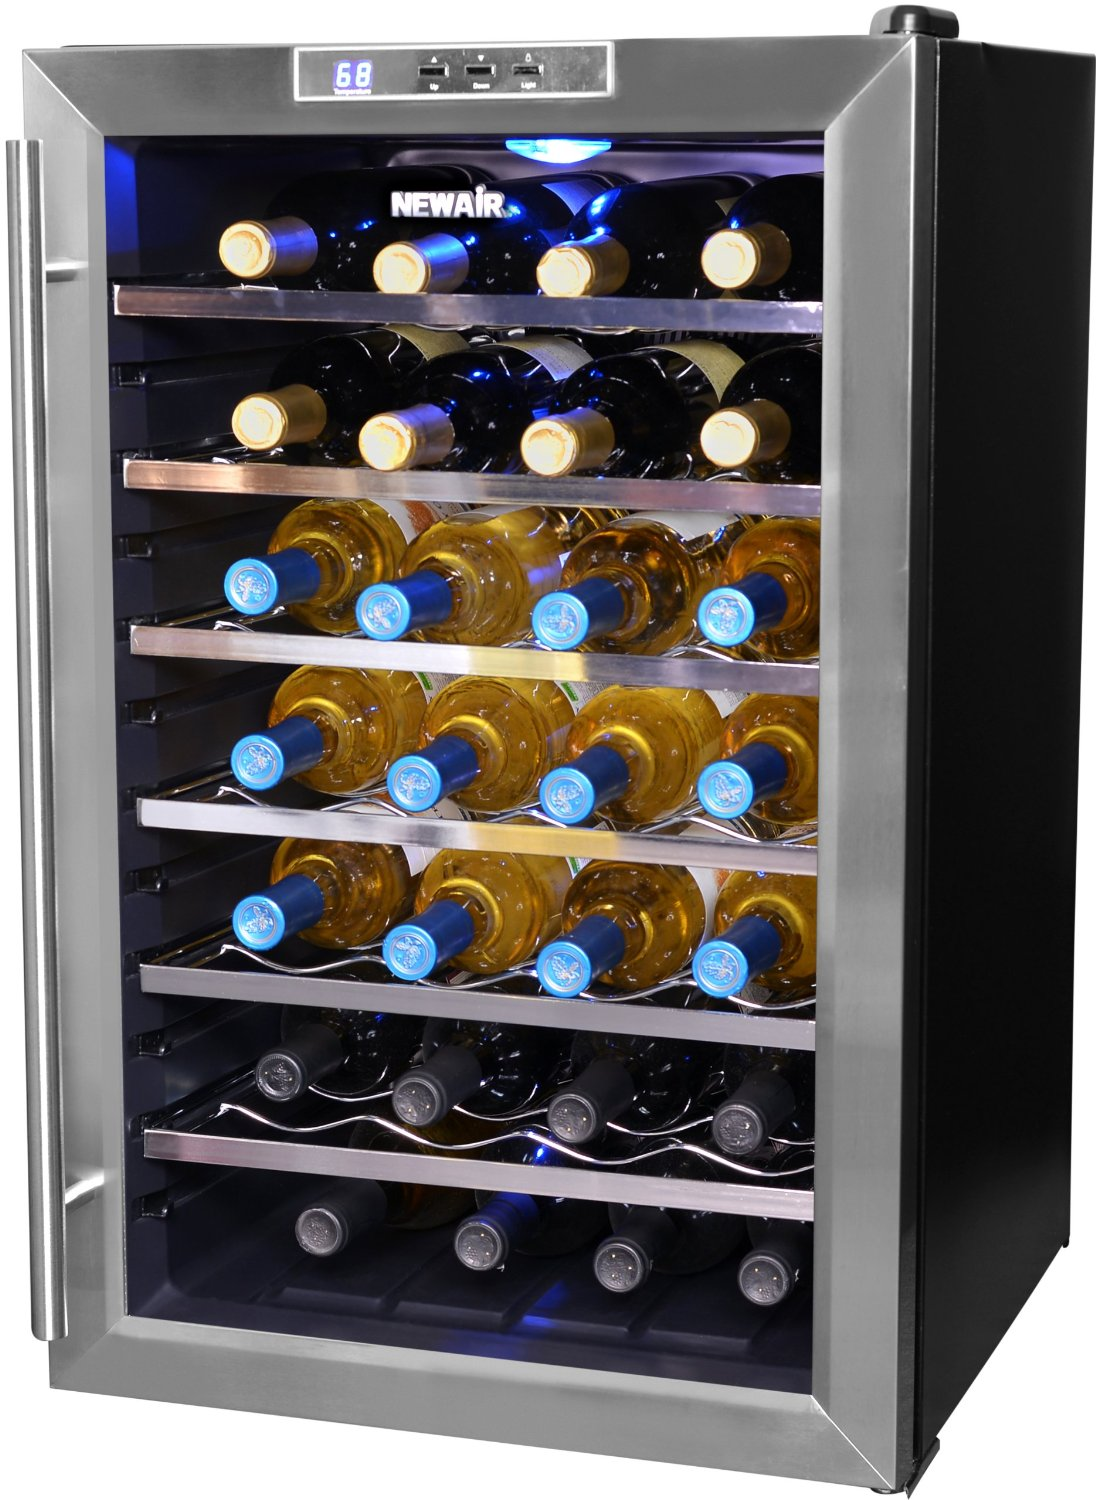 Best Wine Coolers Drinks the best wine coolers - reviews & tips